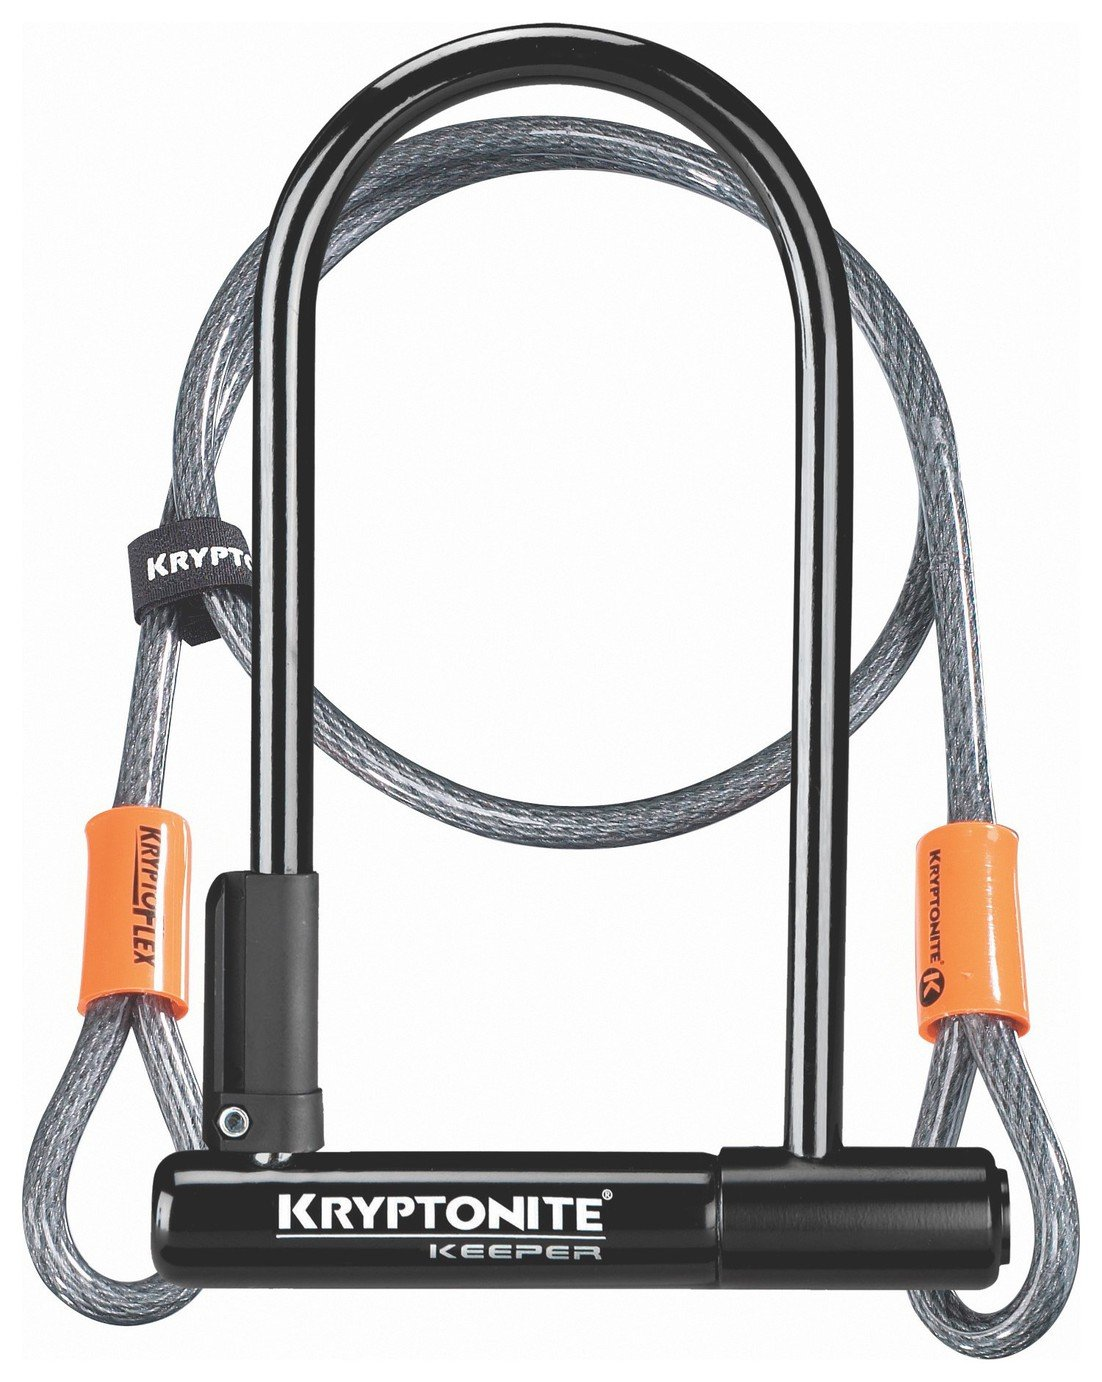 Kryptonite Bike D Lock and Cable Combination